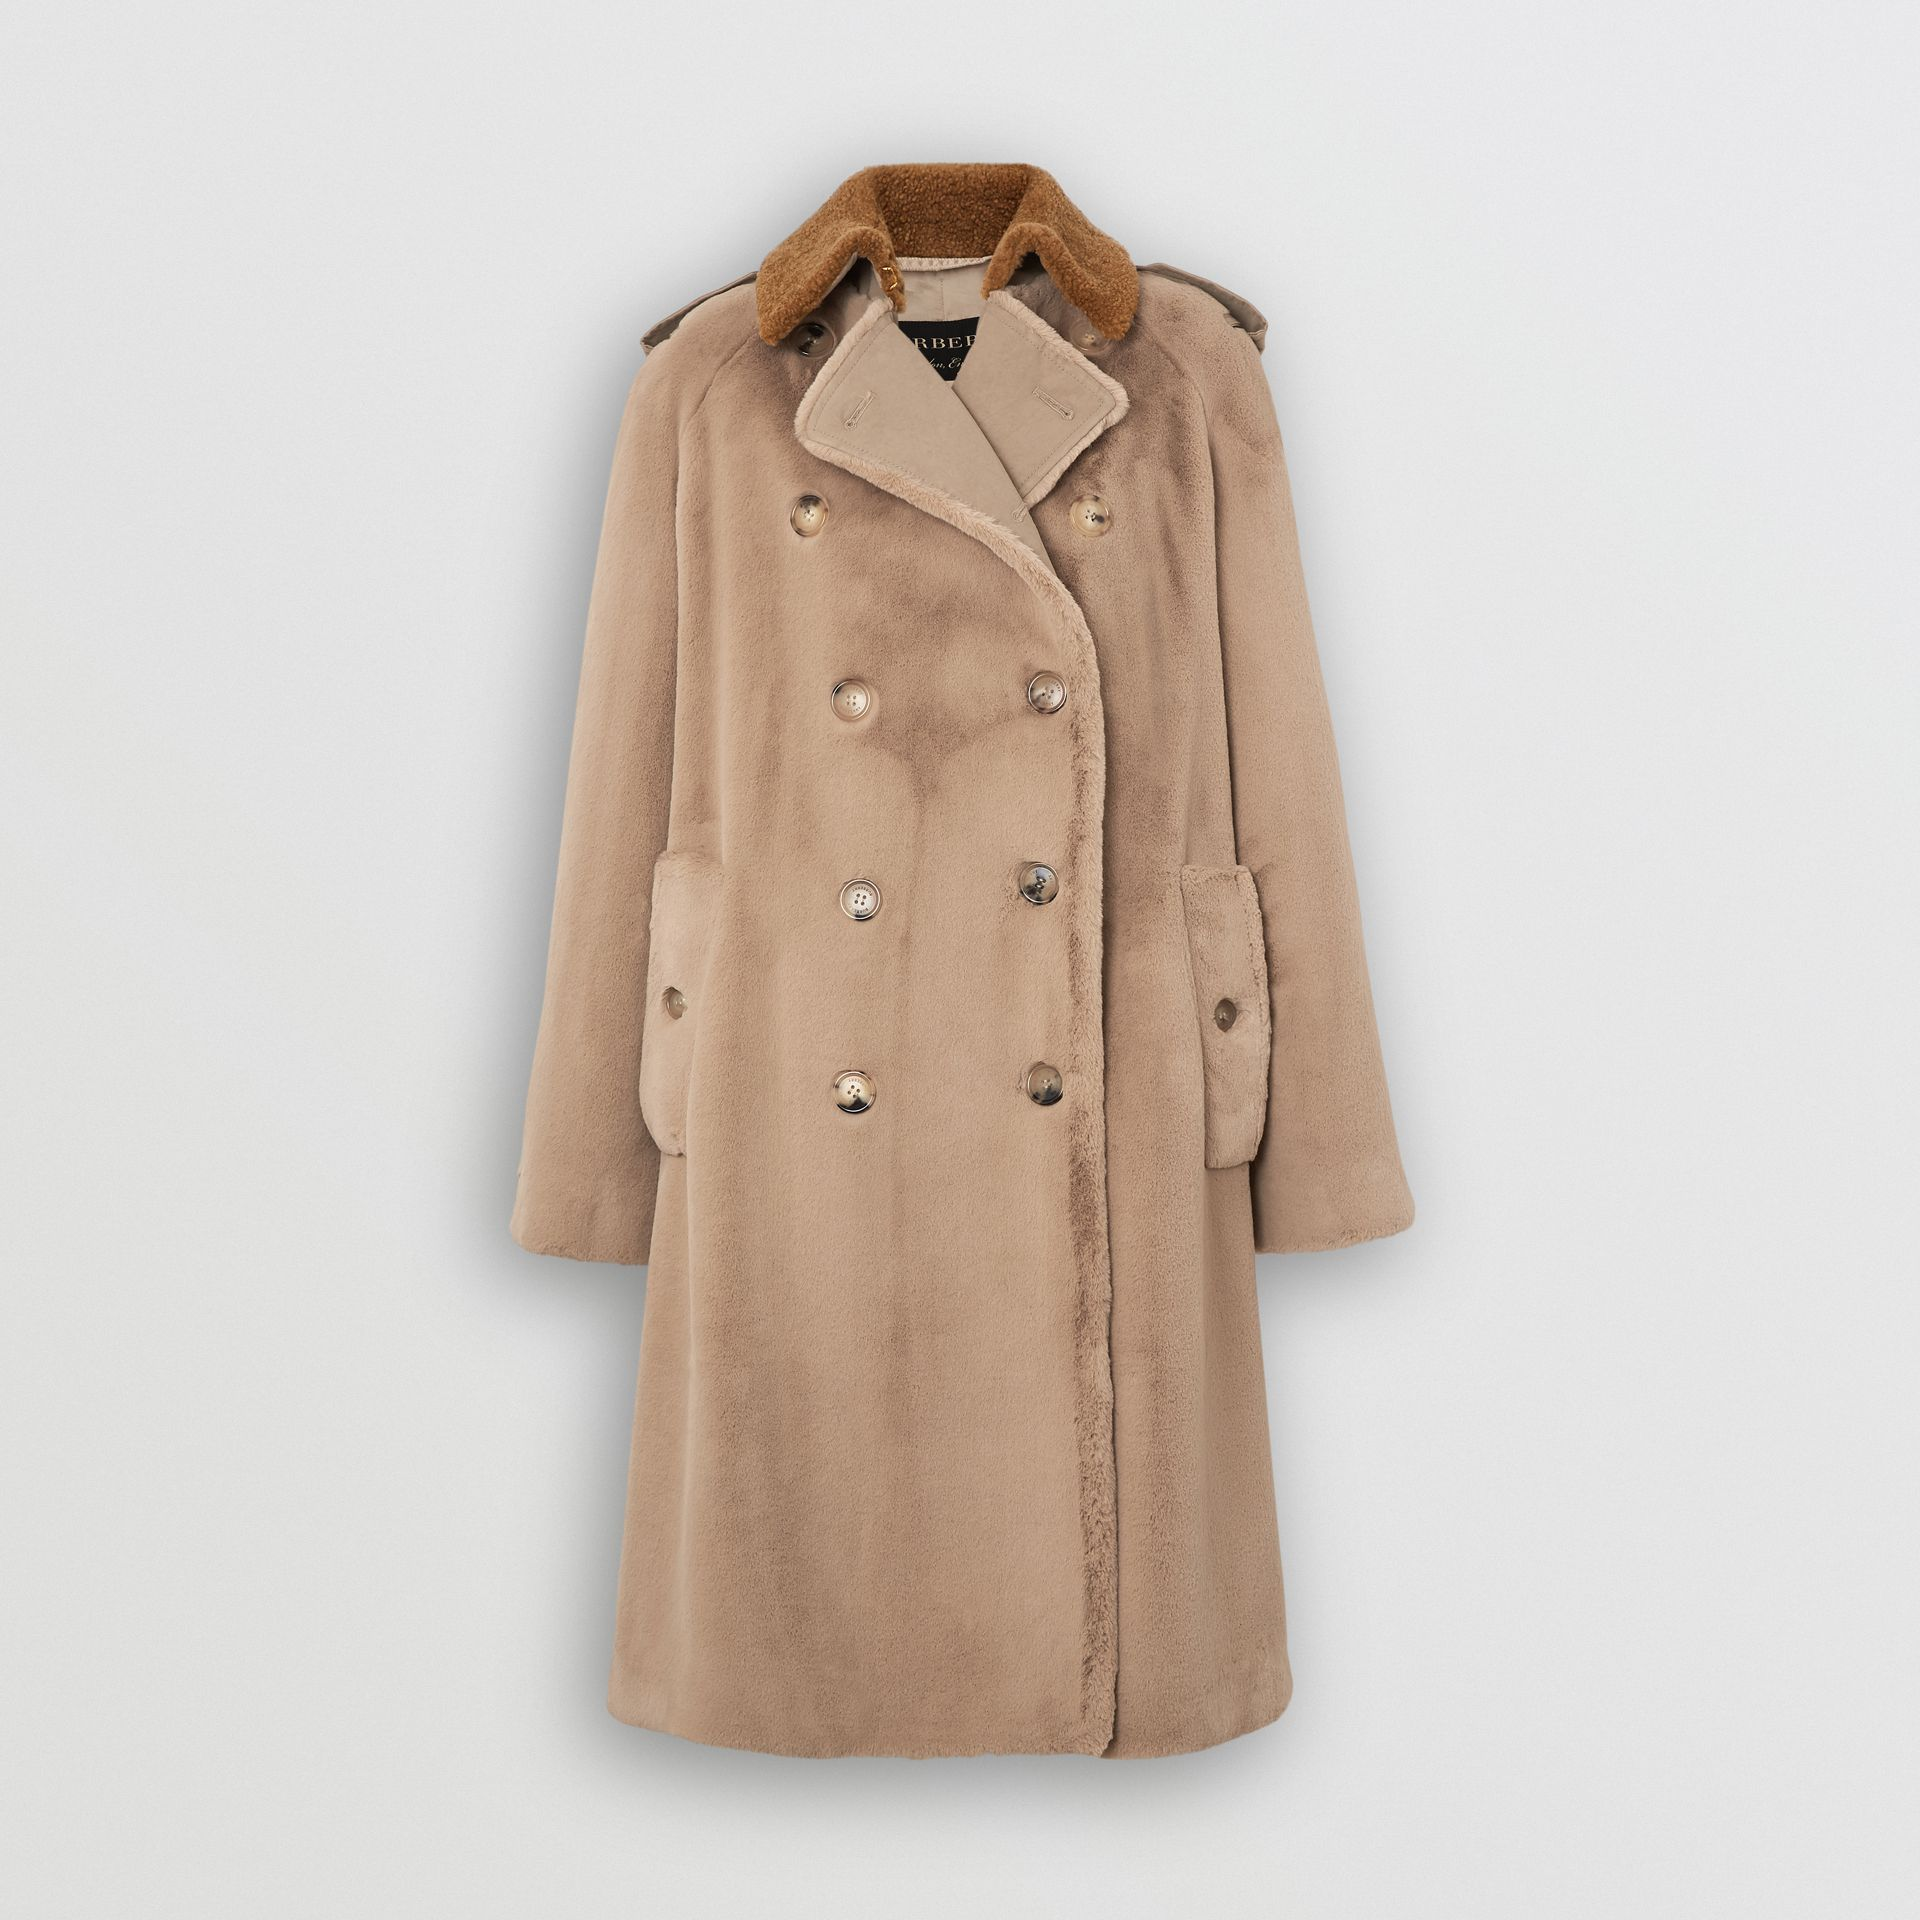 Shearling Trim Faux Fur Trench Coat in Taupe - Women | Burberry - gallery image 3